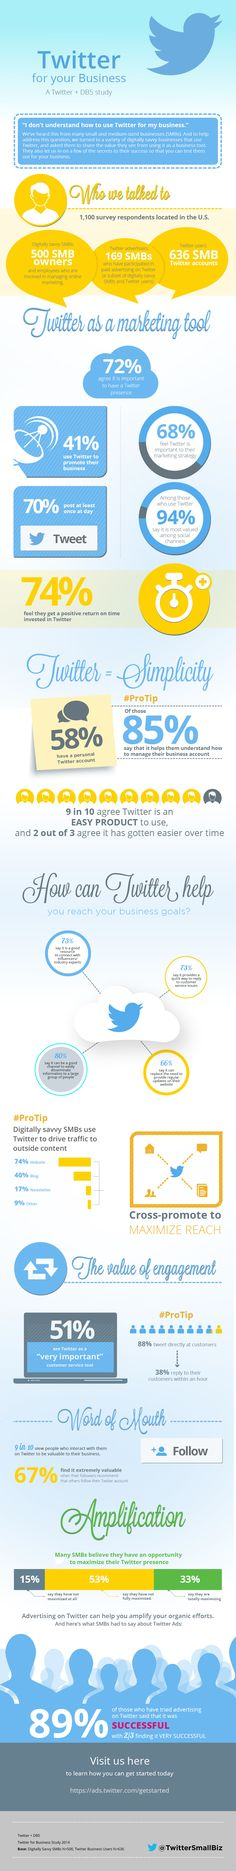 How To Use #Twitter For Your Small Business [INFOGRAPHIC] #sme #socialmedia